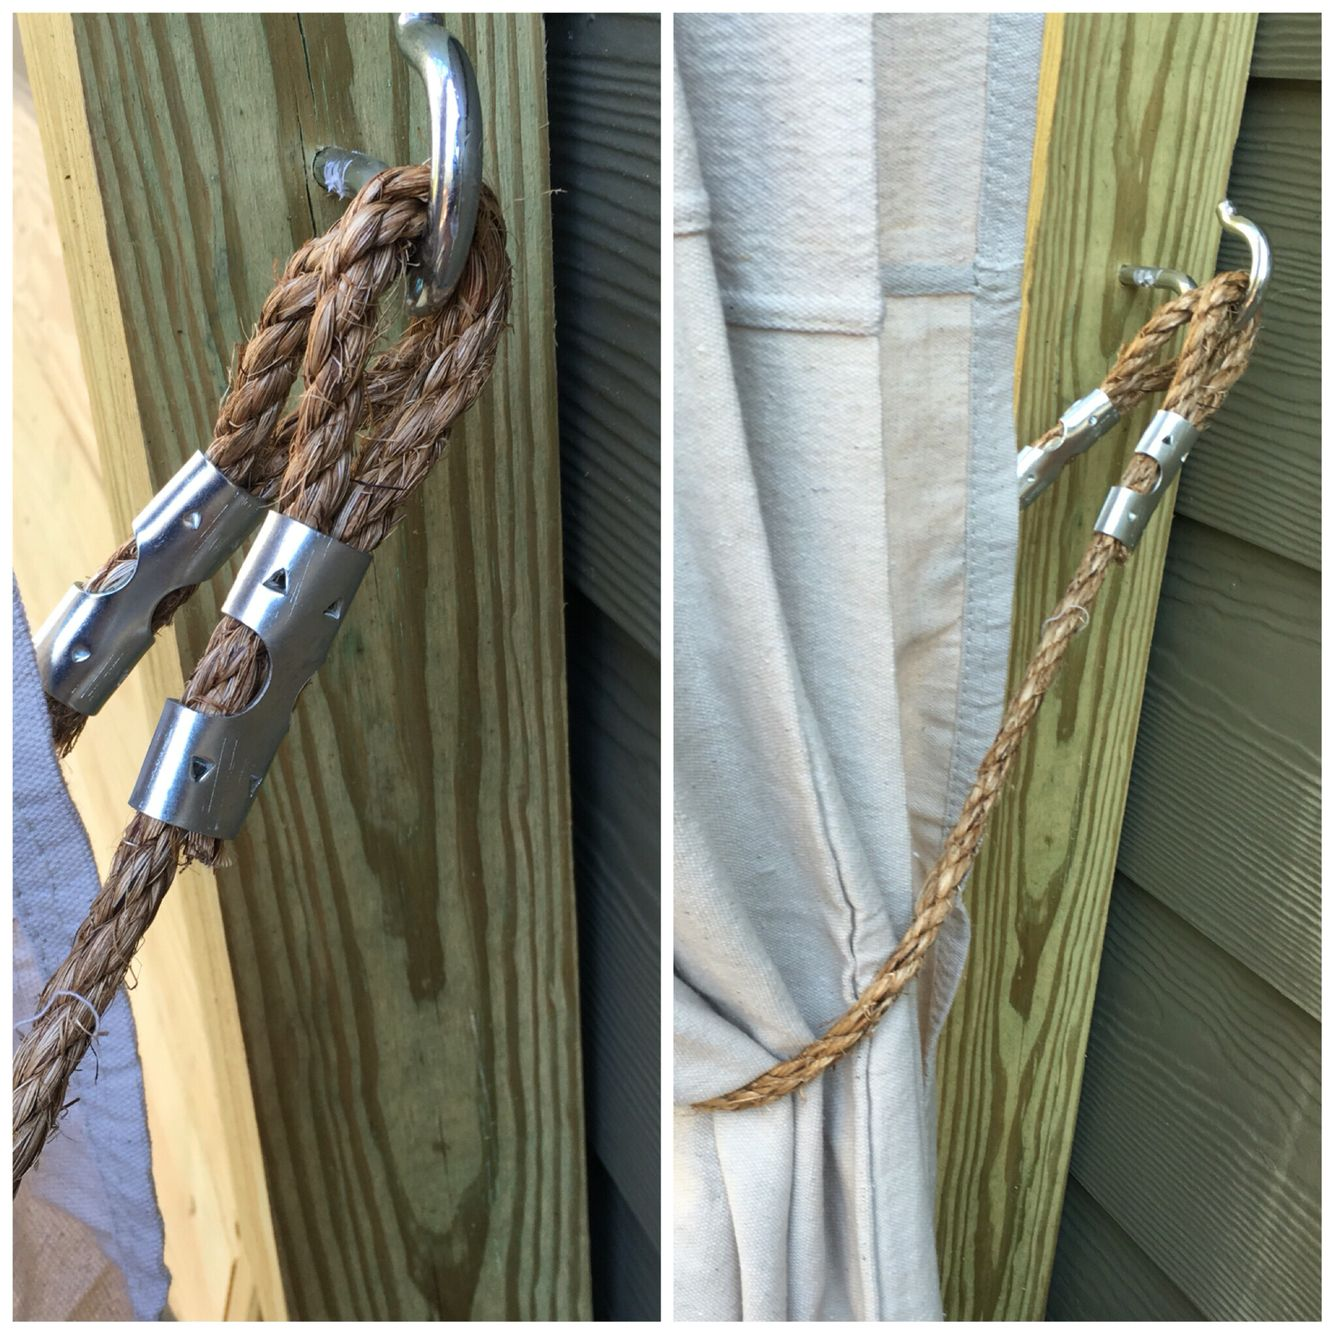 My Diy Outdoor Curtain Tie Backs For 6 12 A Piece 3 Ft Piece Of 3 8 Thick Manilla Rope And Two 1 2 Rope Clamps Per Rope Clamp Outdoor Curtains Curtain Ties